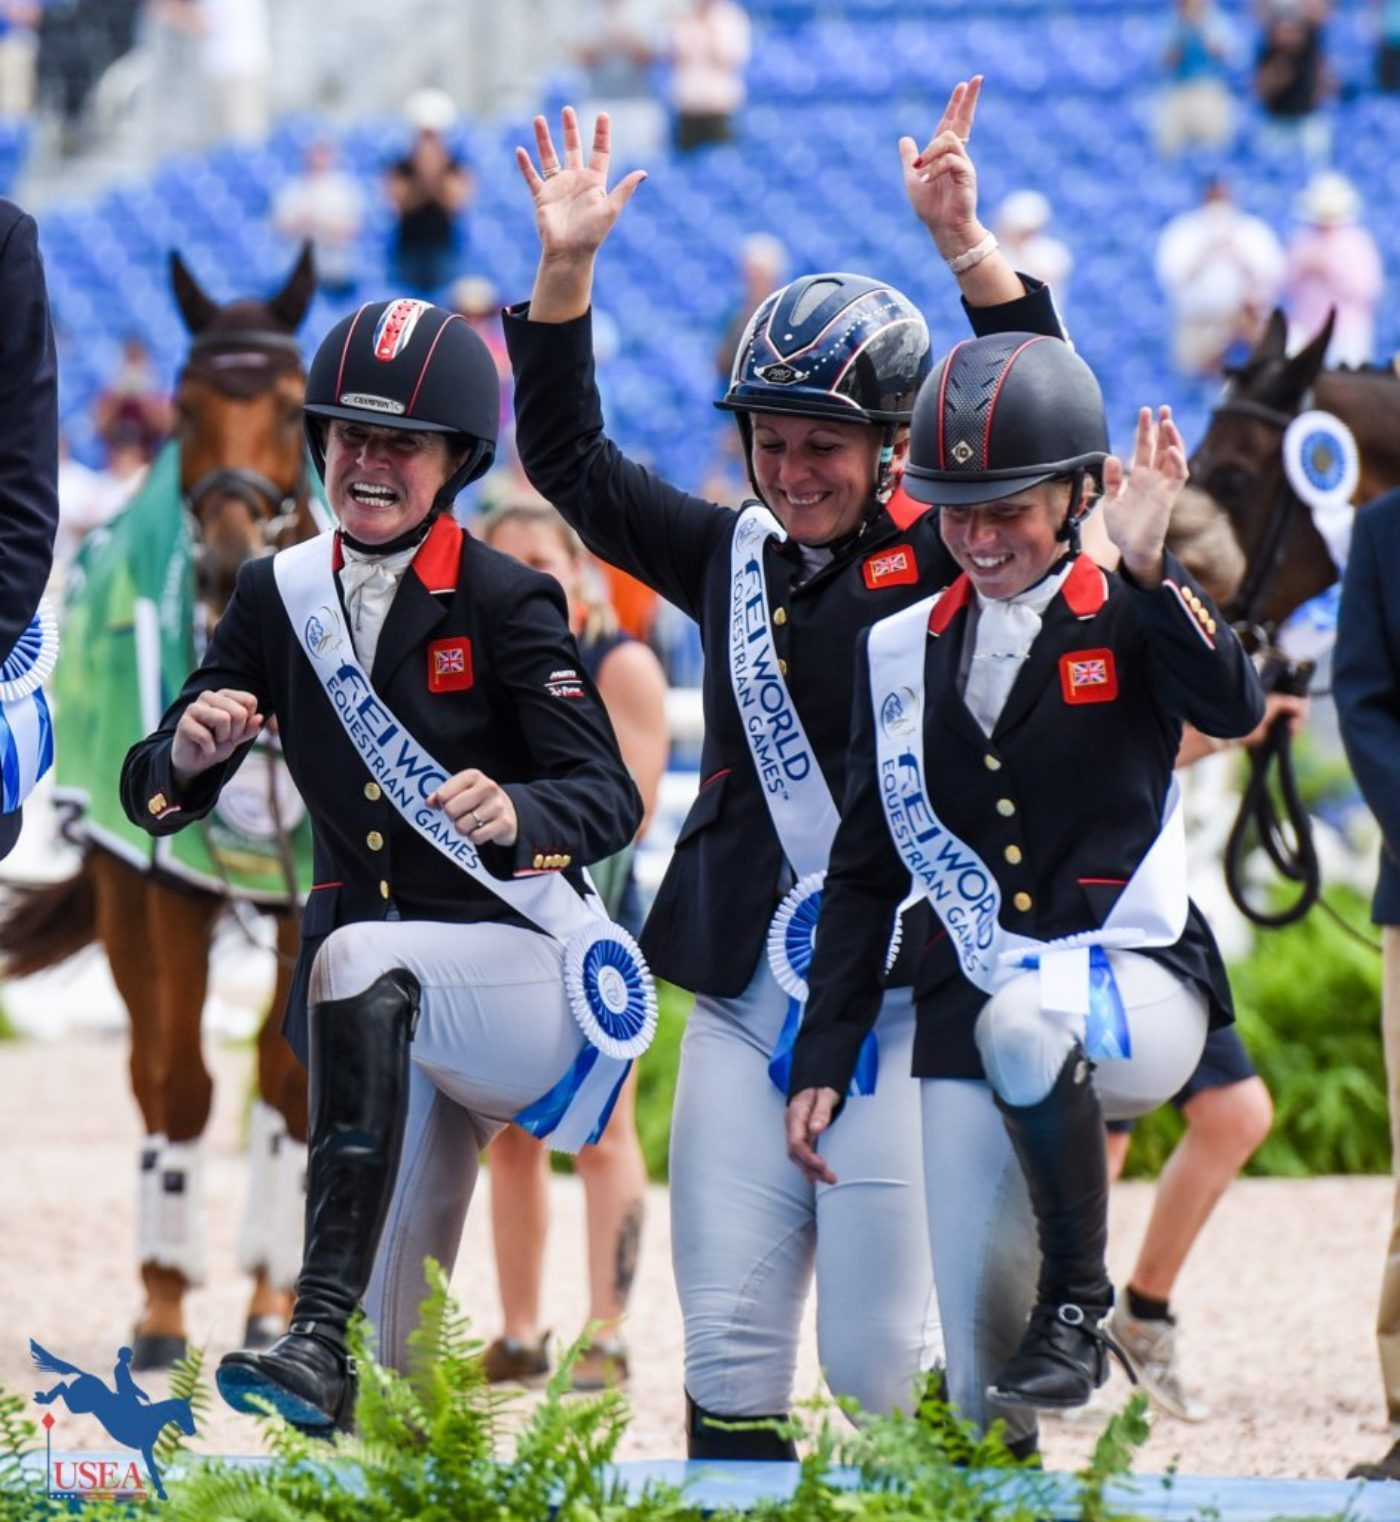 The British Team celebrating their (literal) climb to the top of the podium. USEA/Leslie Mintz Photo.